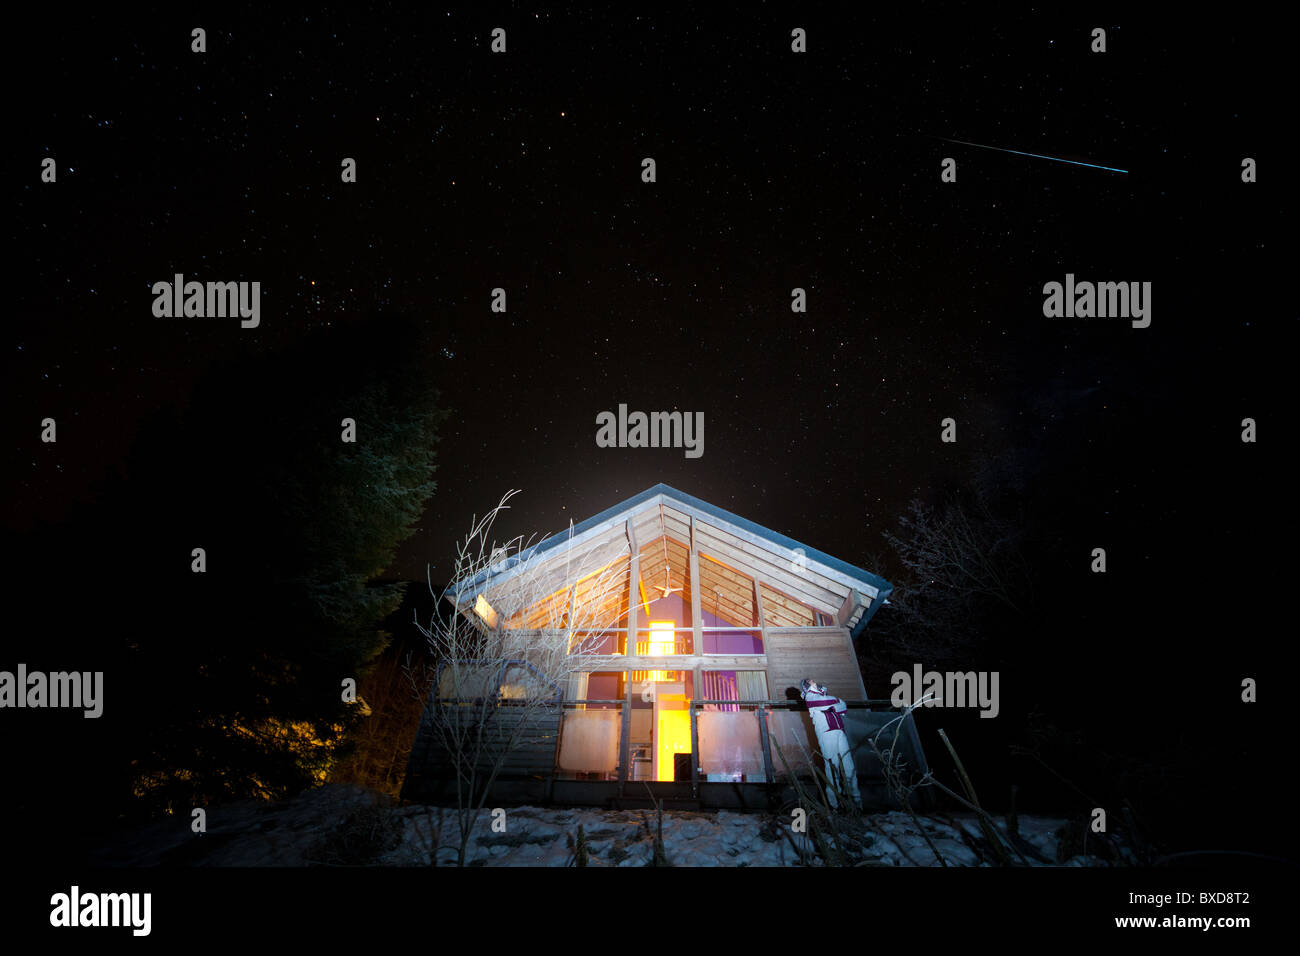 Meteor (Shooting Star) - Over Log Cabin In Scotland On a Dark Night With Star Filled Sky - Stock Image